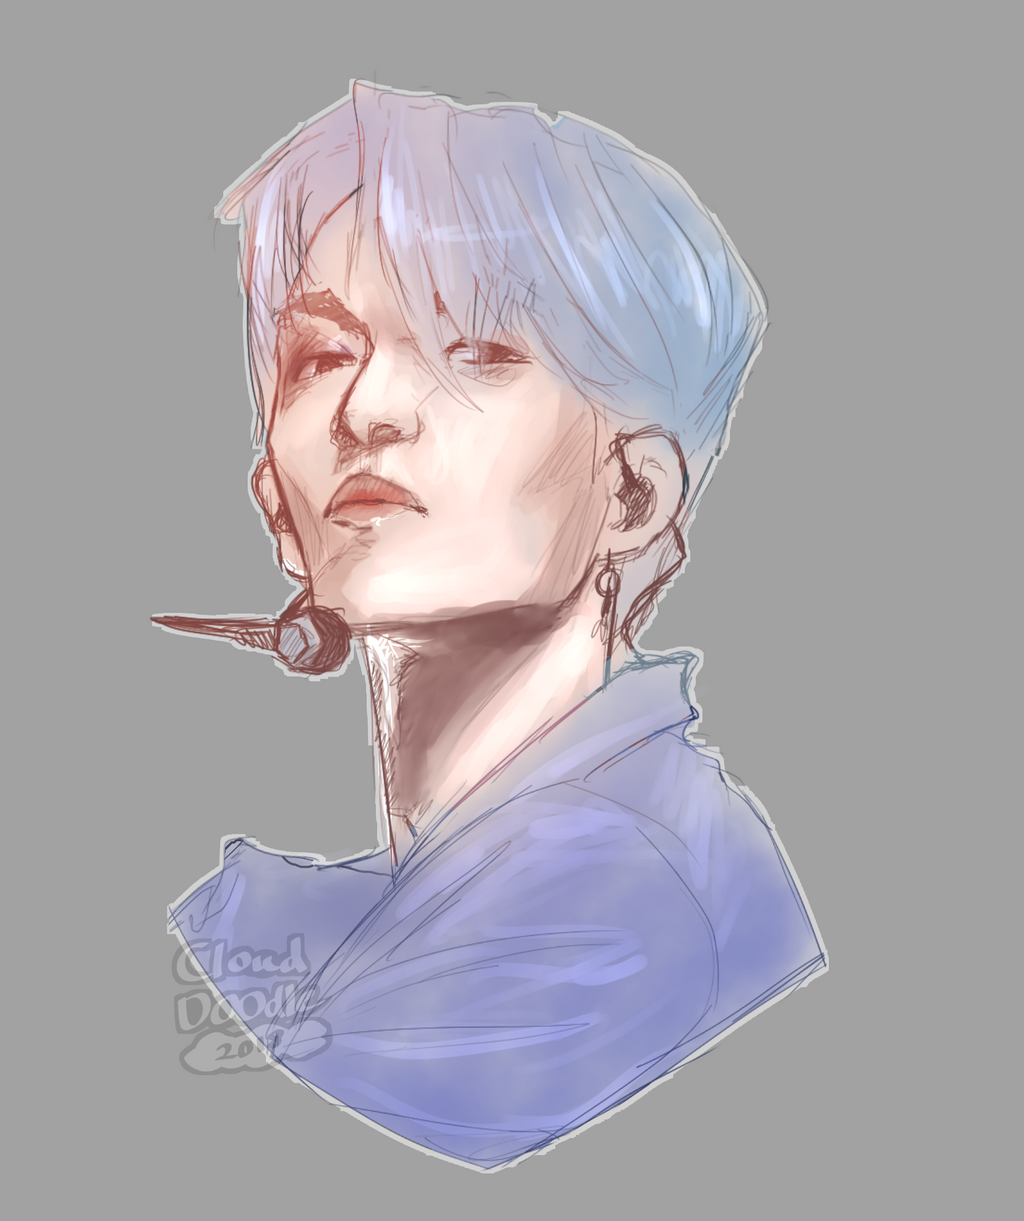 Birthday Scoups by CloudDoodle